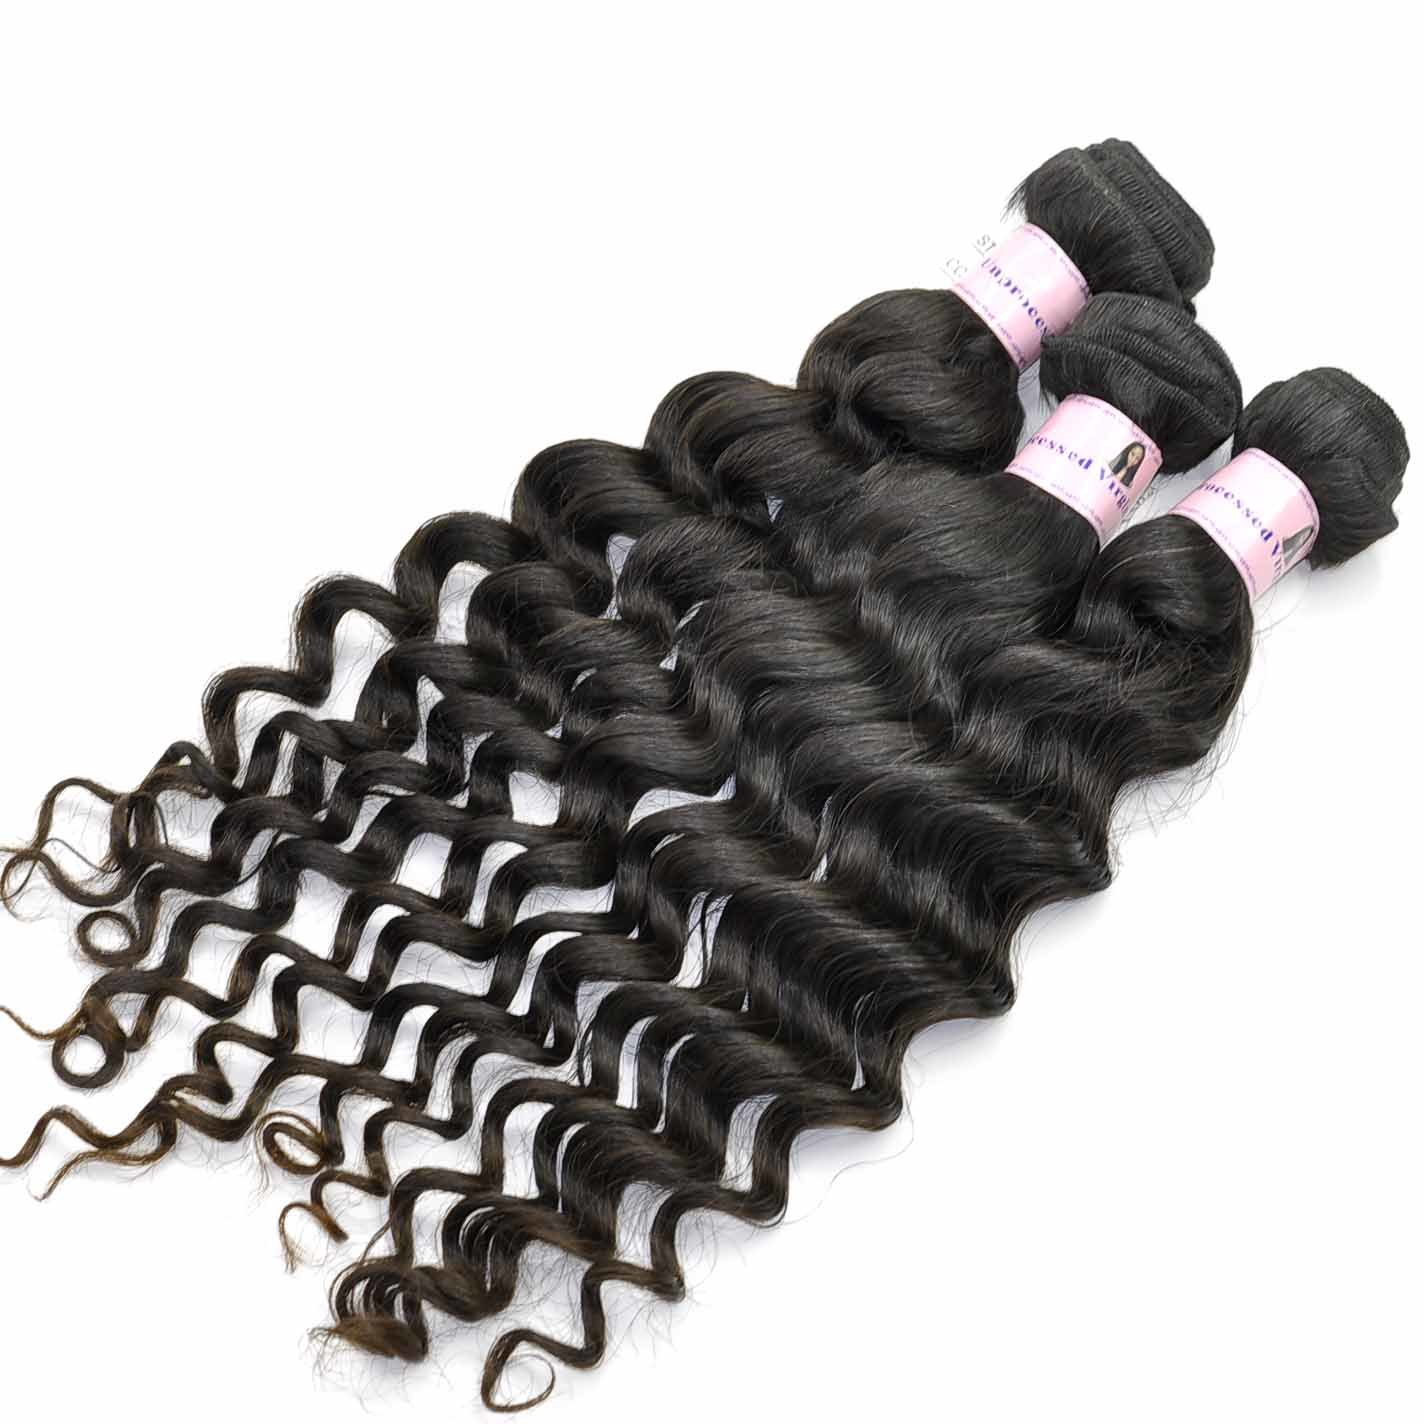 China 100 Deep Wave Virgin Indian Human Hair Extensions